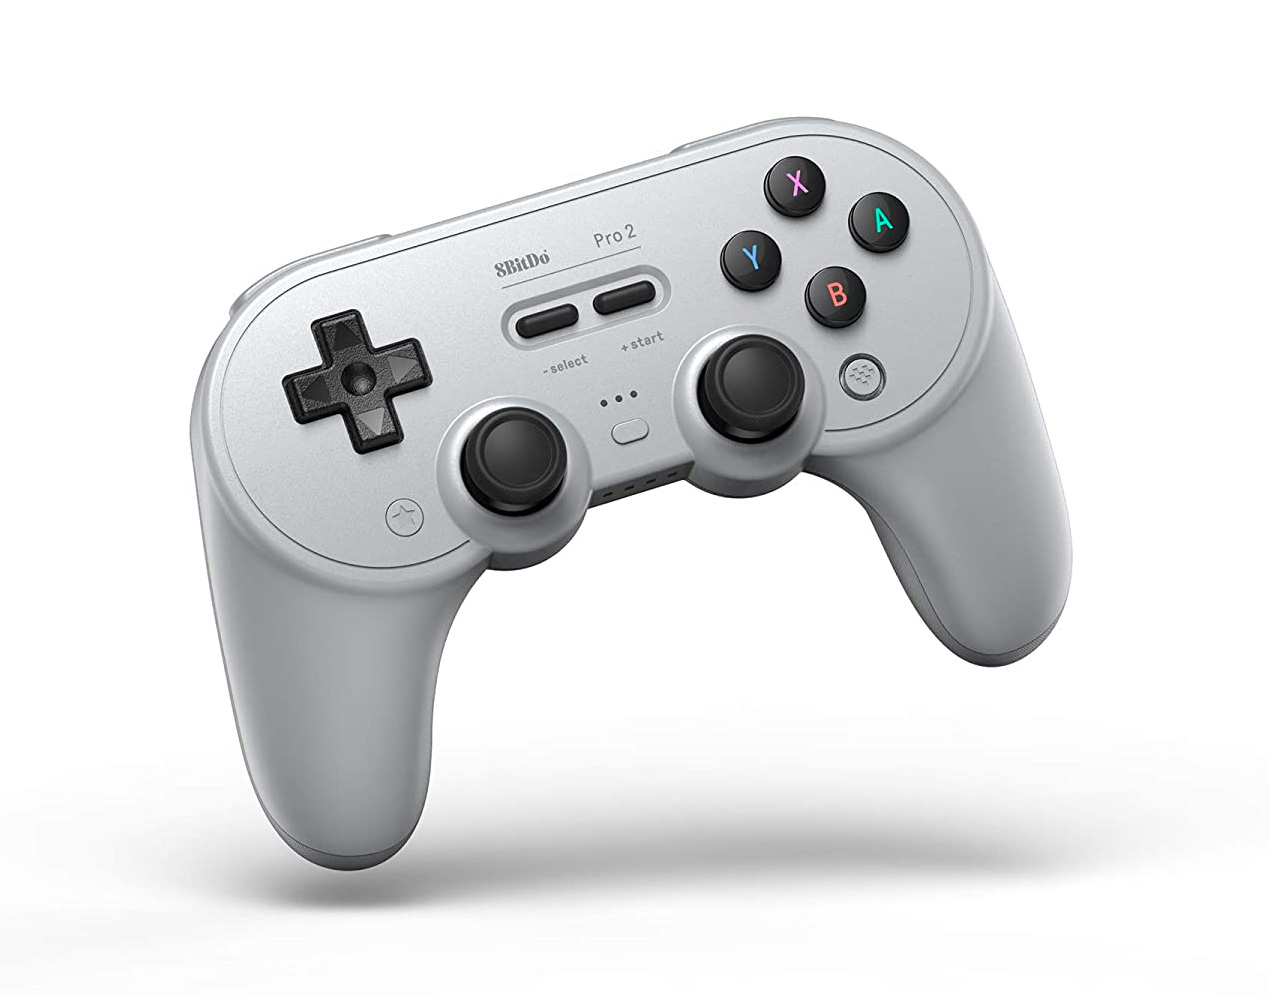 8BitDo Levels Up with Pro2 Game Controller at werd.com